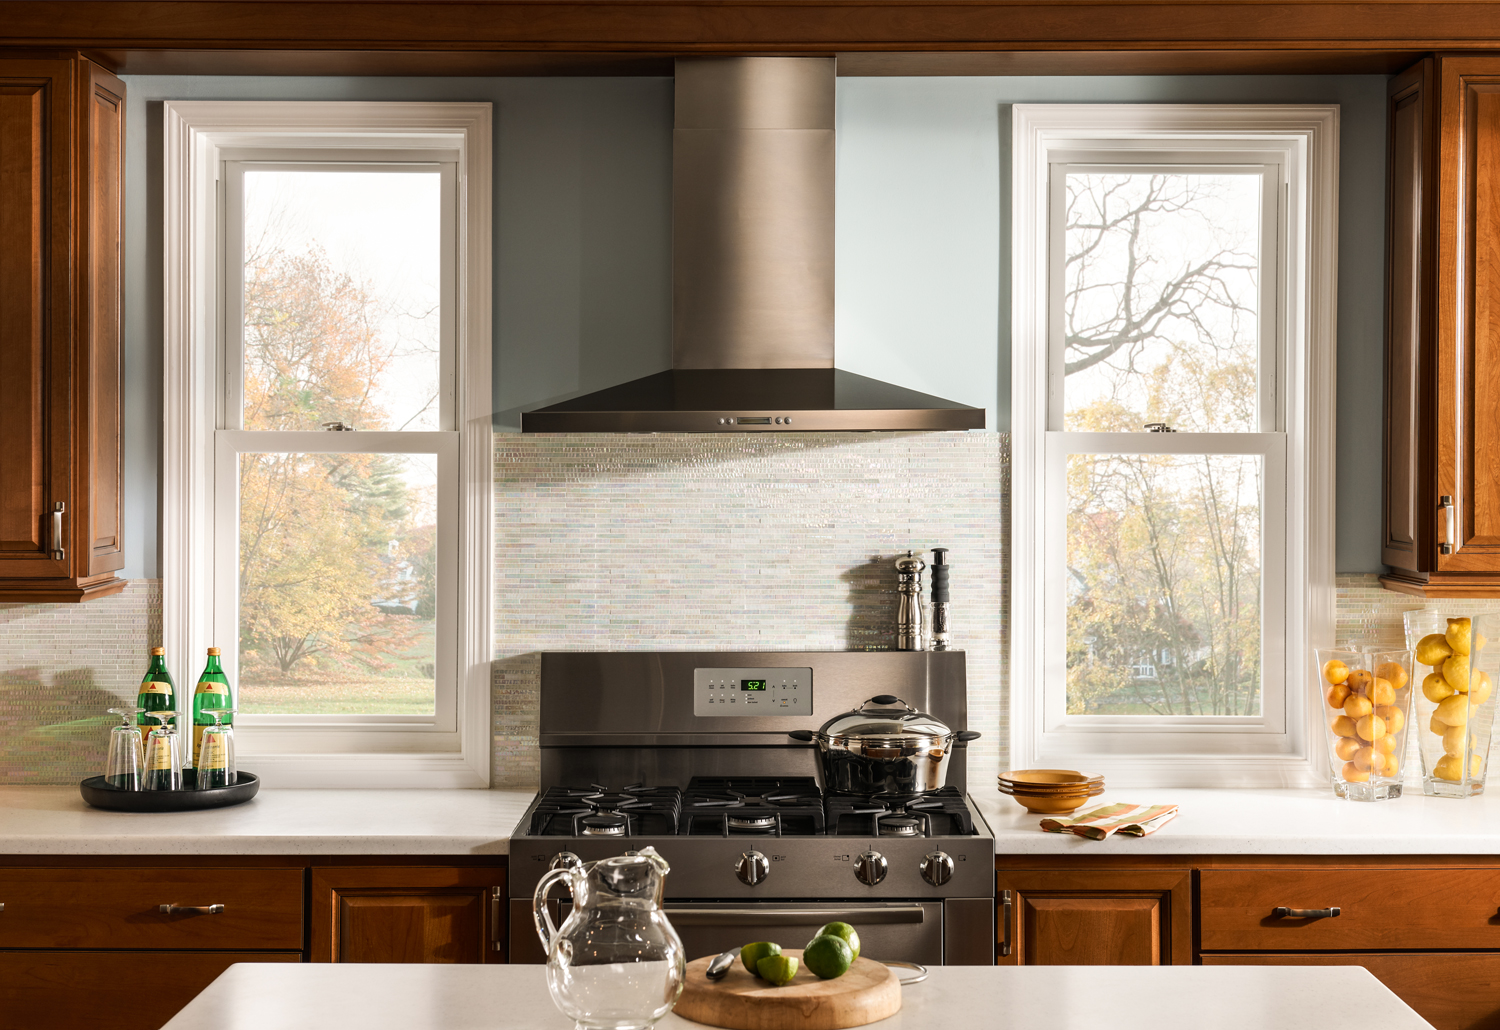 Simonton-Double-Hung-Windows-Kitchen-tif